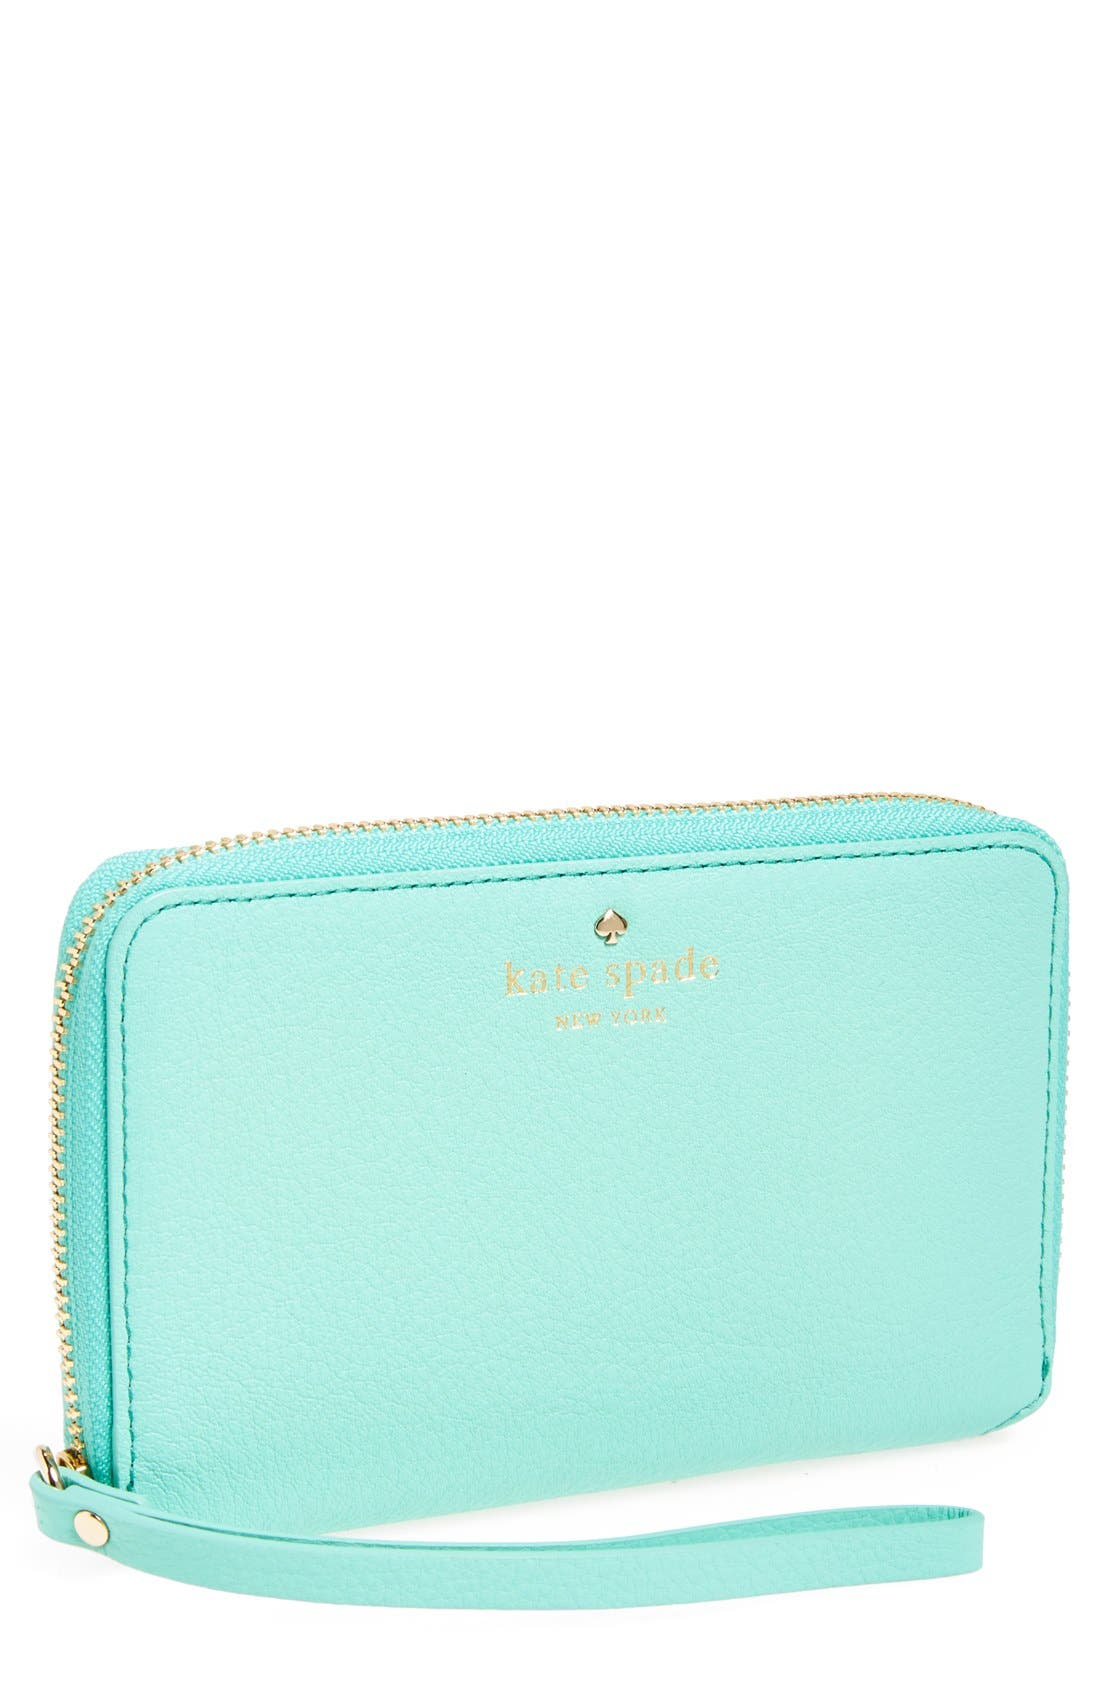 Main Image - kate spade new york 'cobble hill - laurie' wallet